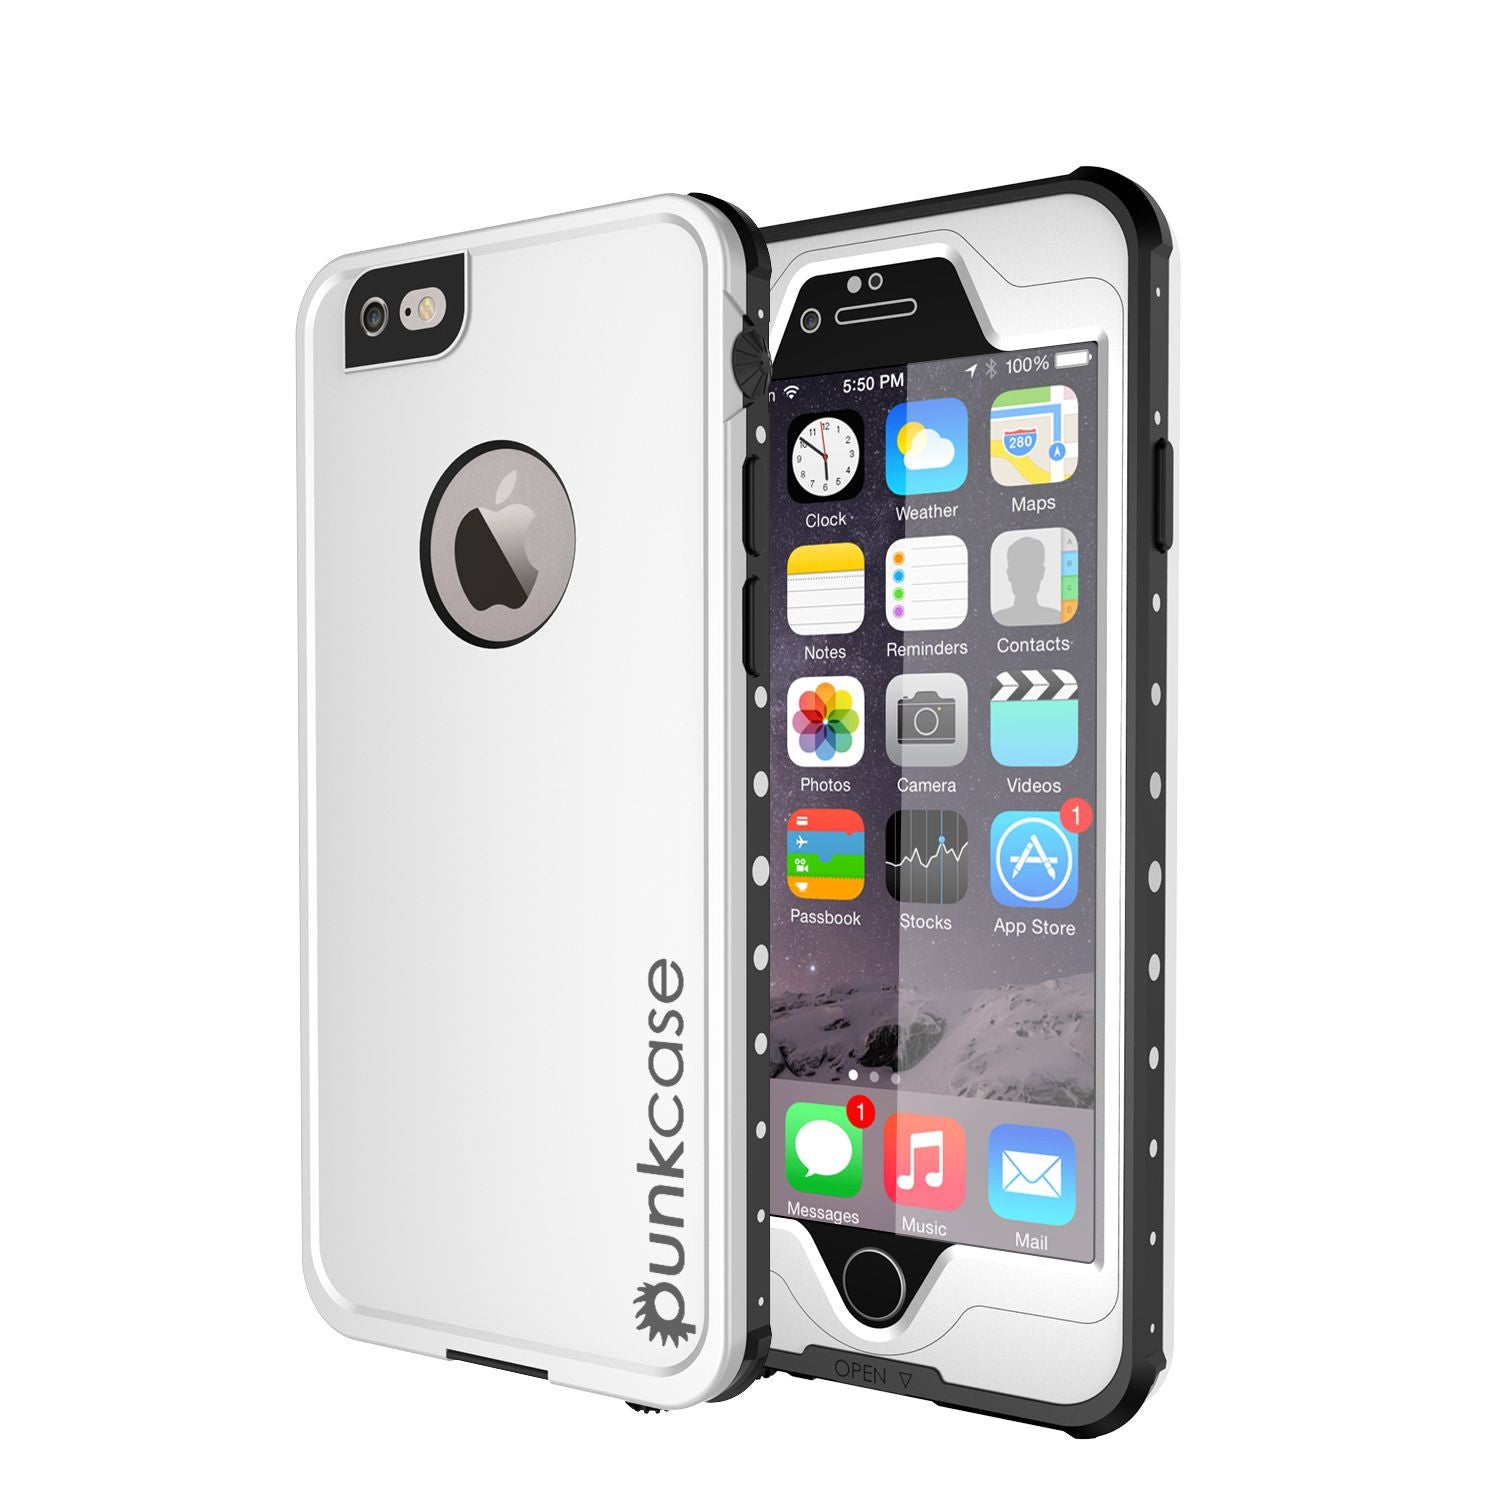 quality design 2e92b b2340 iPhone 6S+/6+ Plus Waterproof Case, PUNKcase StudStar White w/ Attached  Screen Protector | Warranty